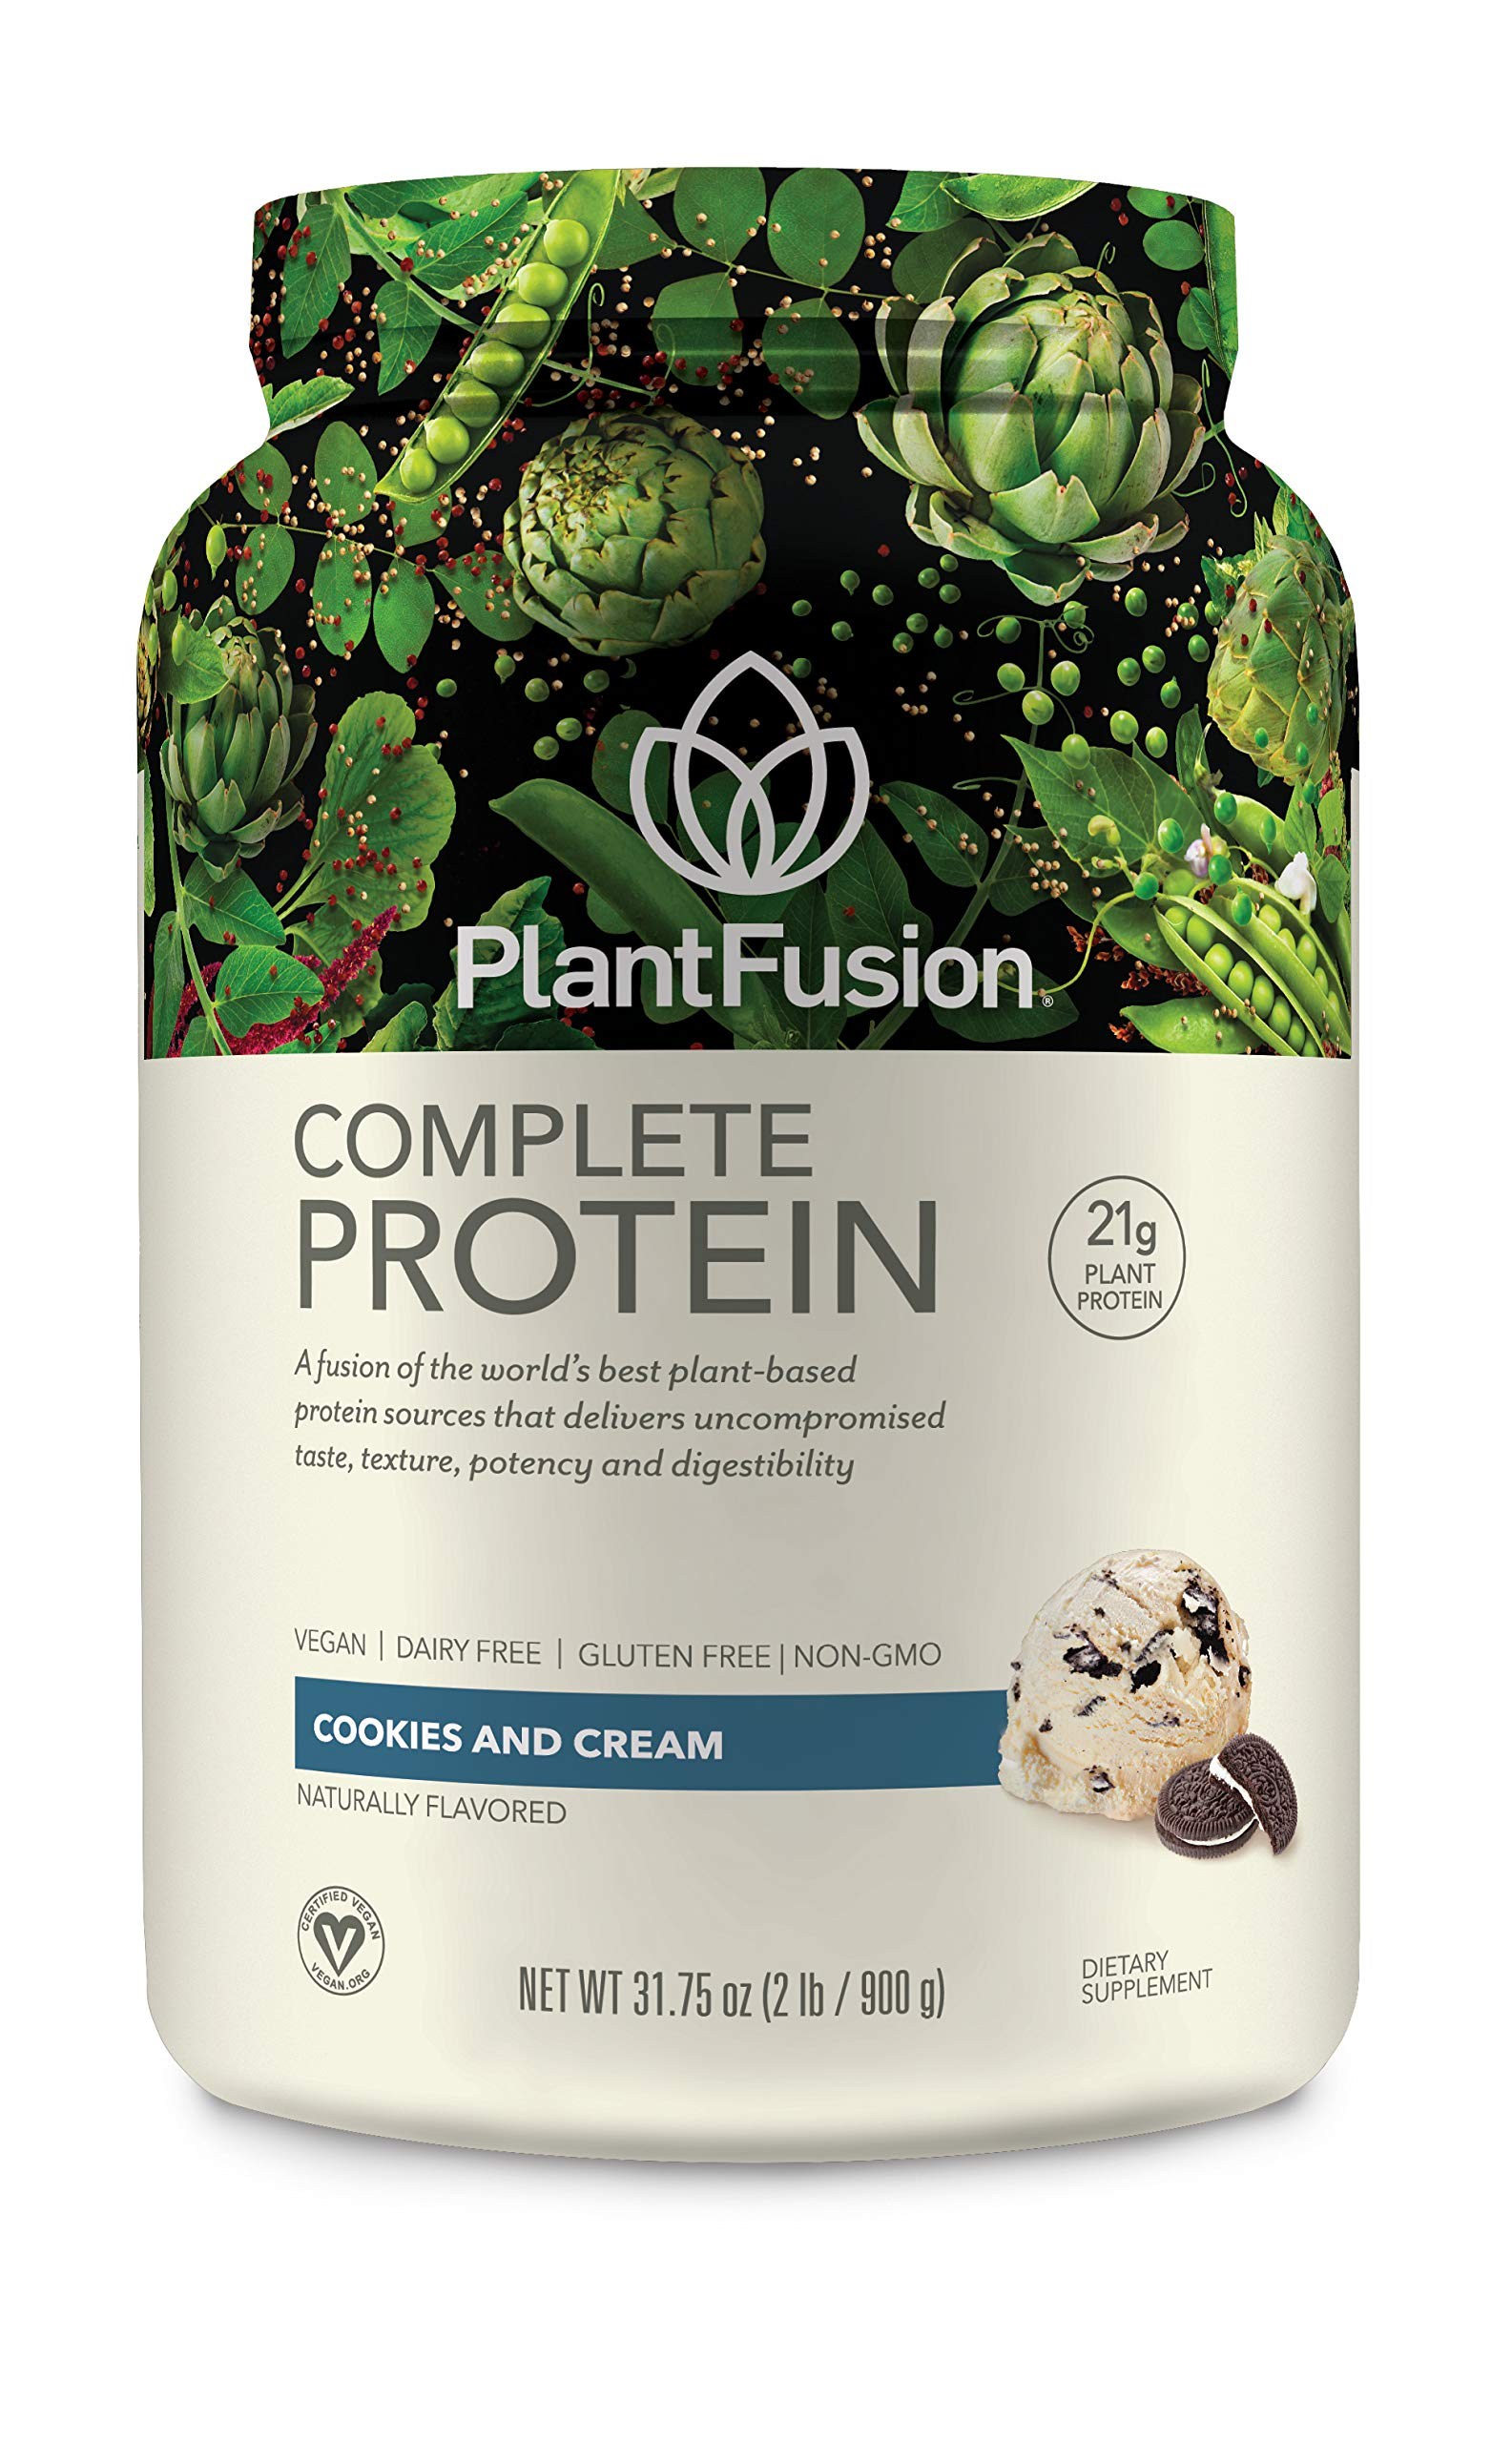 PlantFusion Complete Plant-Based Protein Powder, Gluten Free, Vegan, Non-GMO, Packing May Vary, Cookies N Crème, 2 Pound by PlantFusion